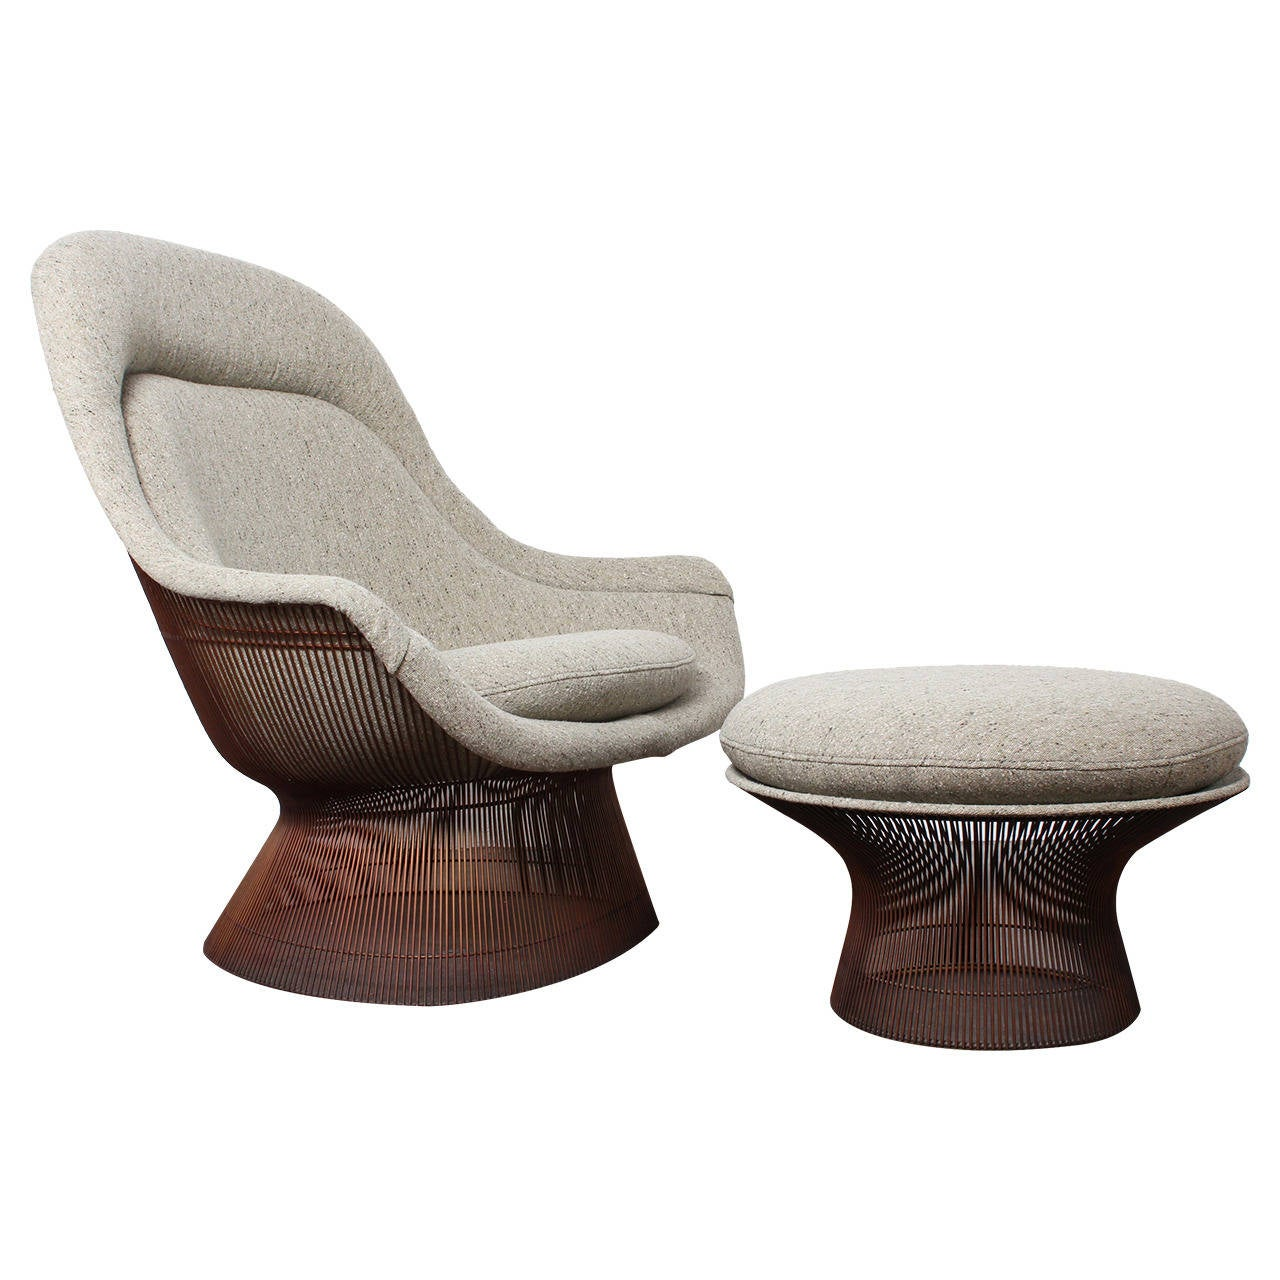 Warren Platner Copper Throne Chair And Ottoman At 1stdibs